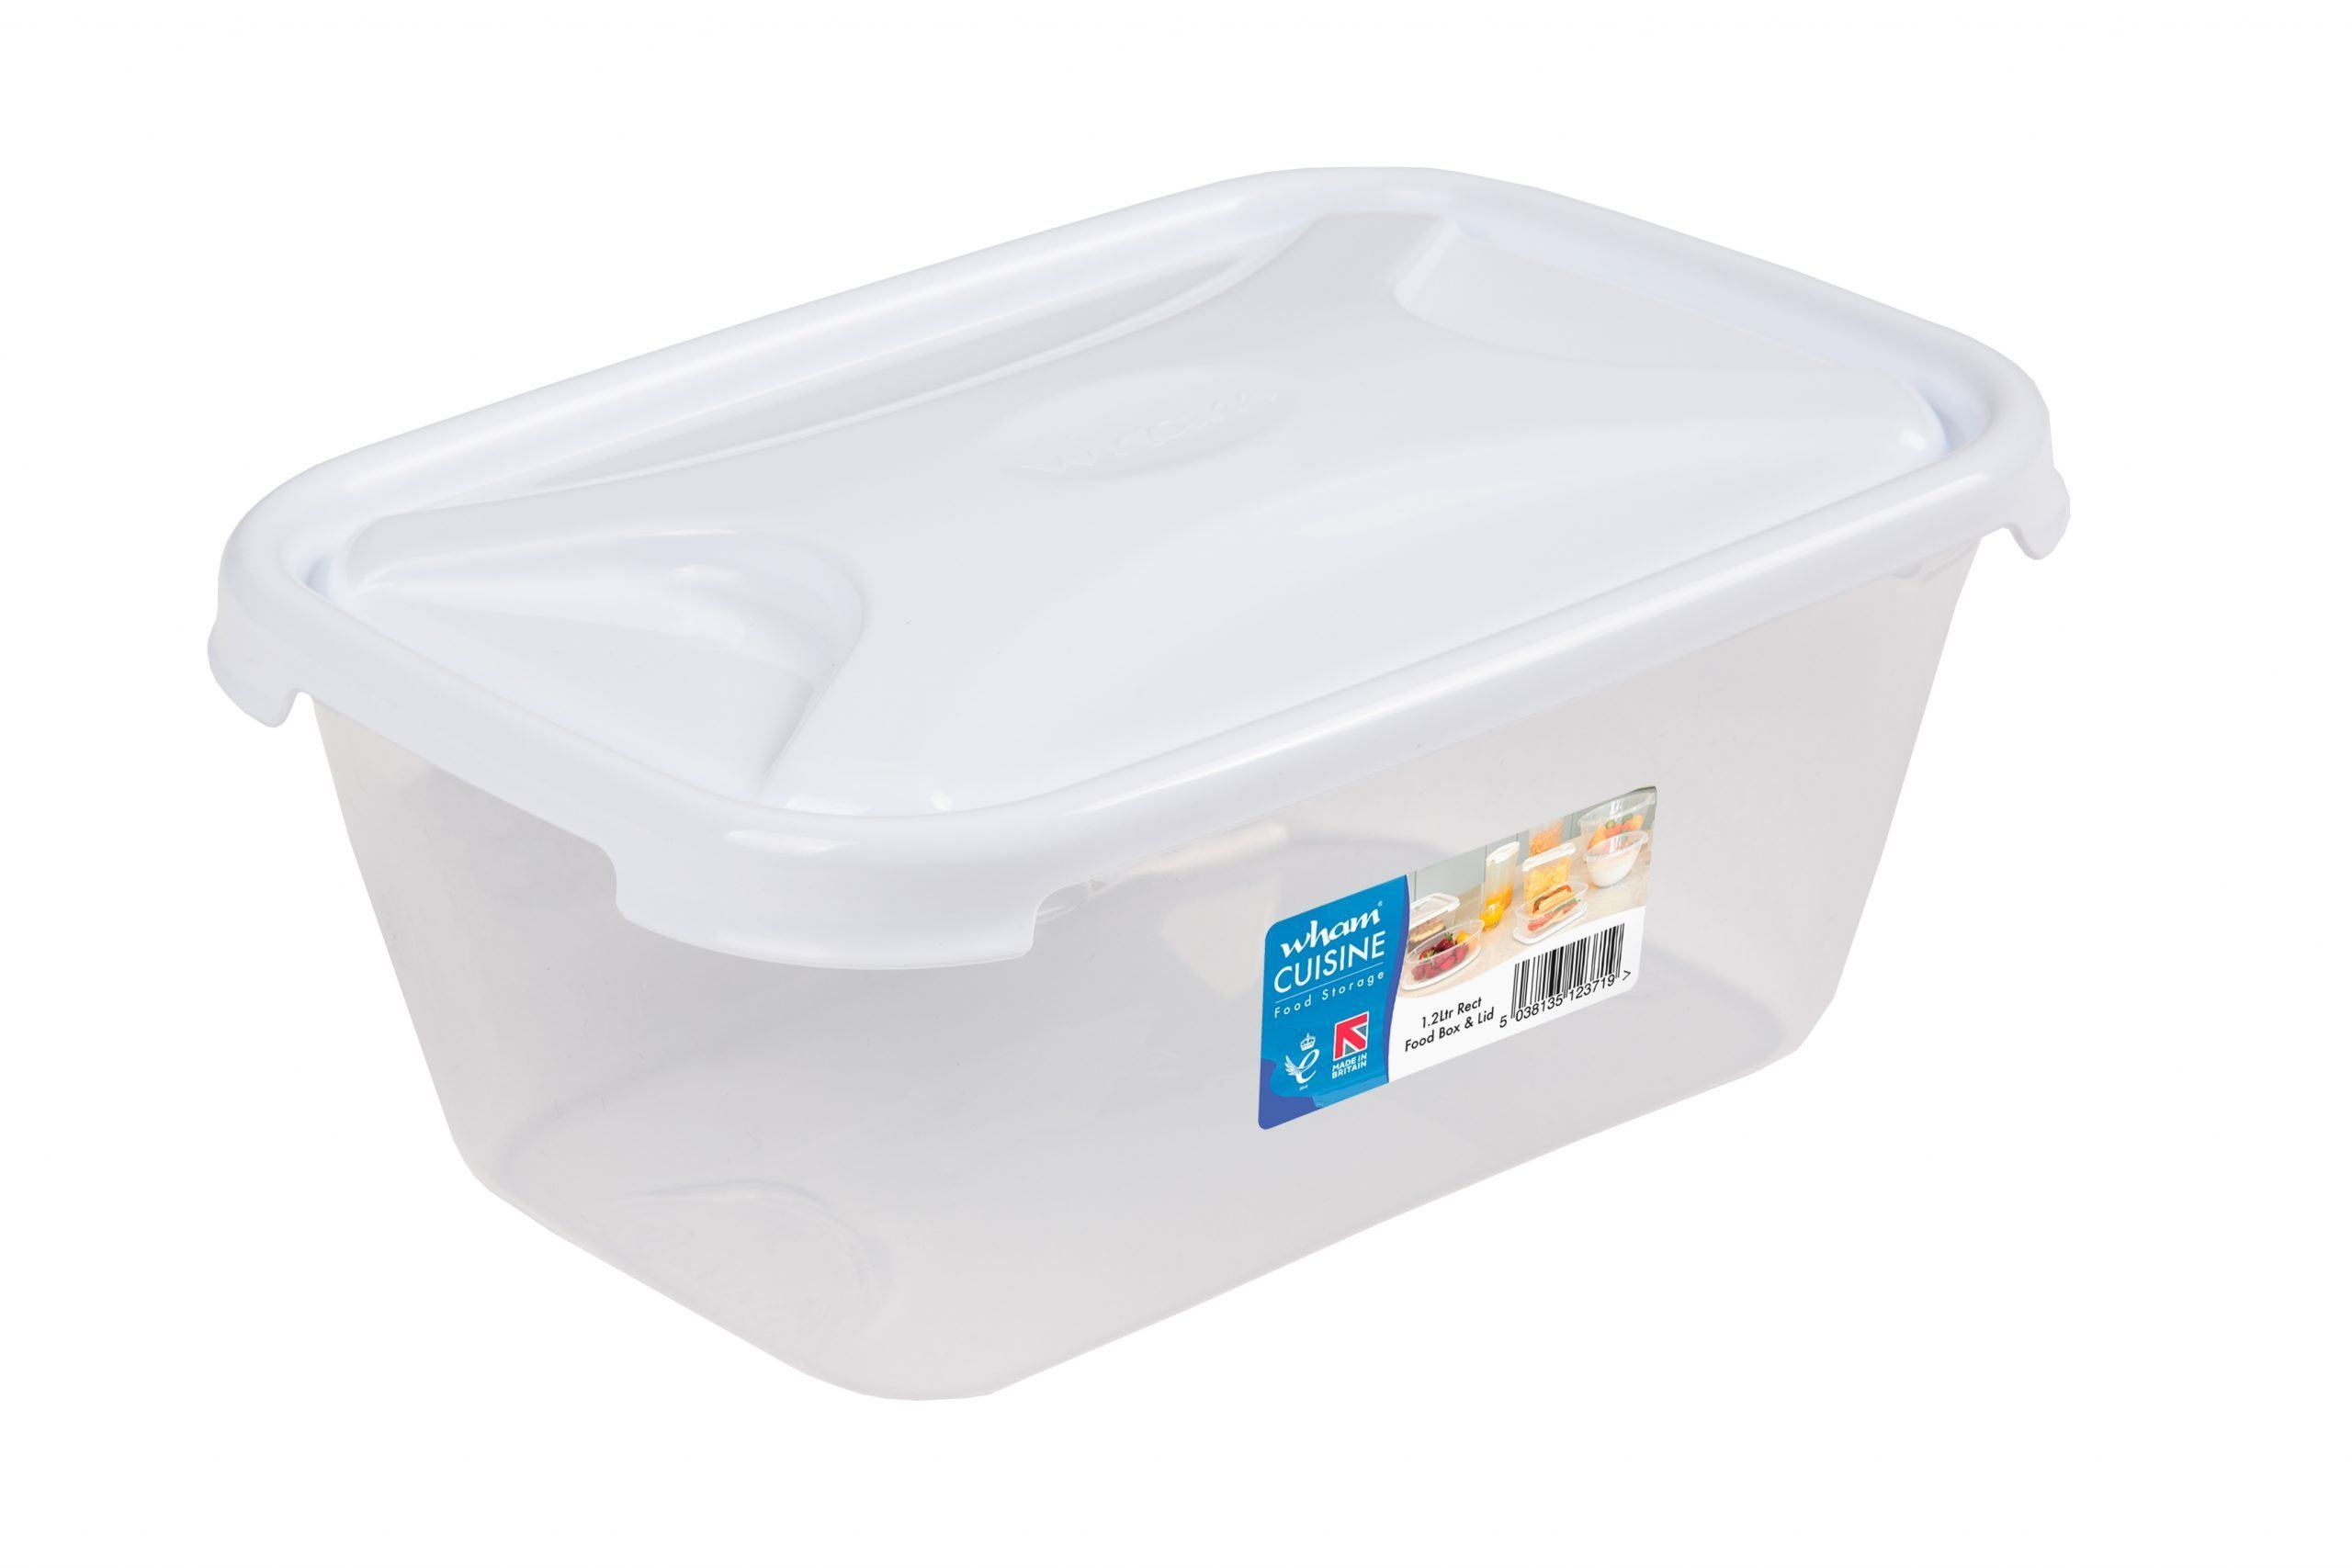 1.2Ltr Cuisine Rectangular Plastic Food Storage Container